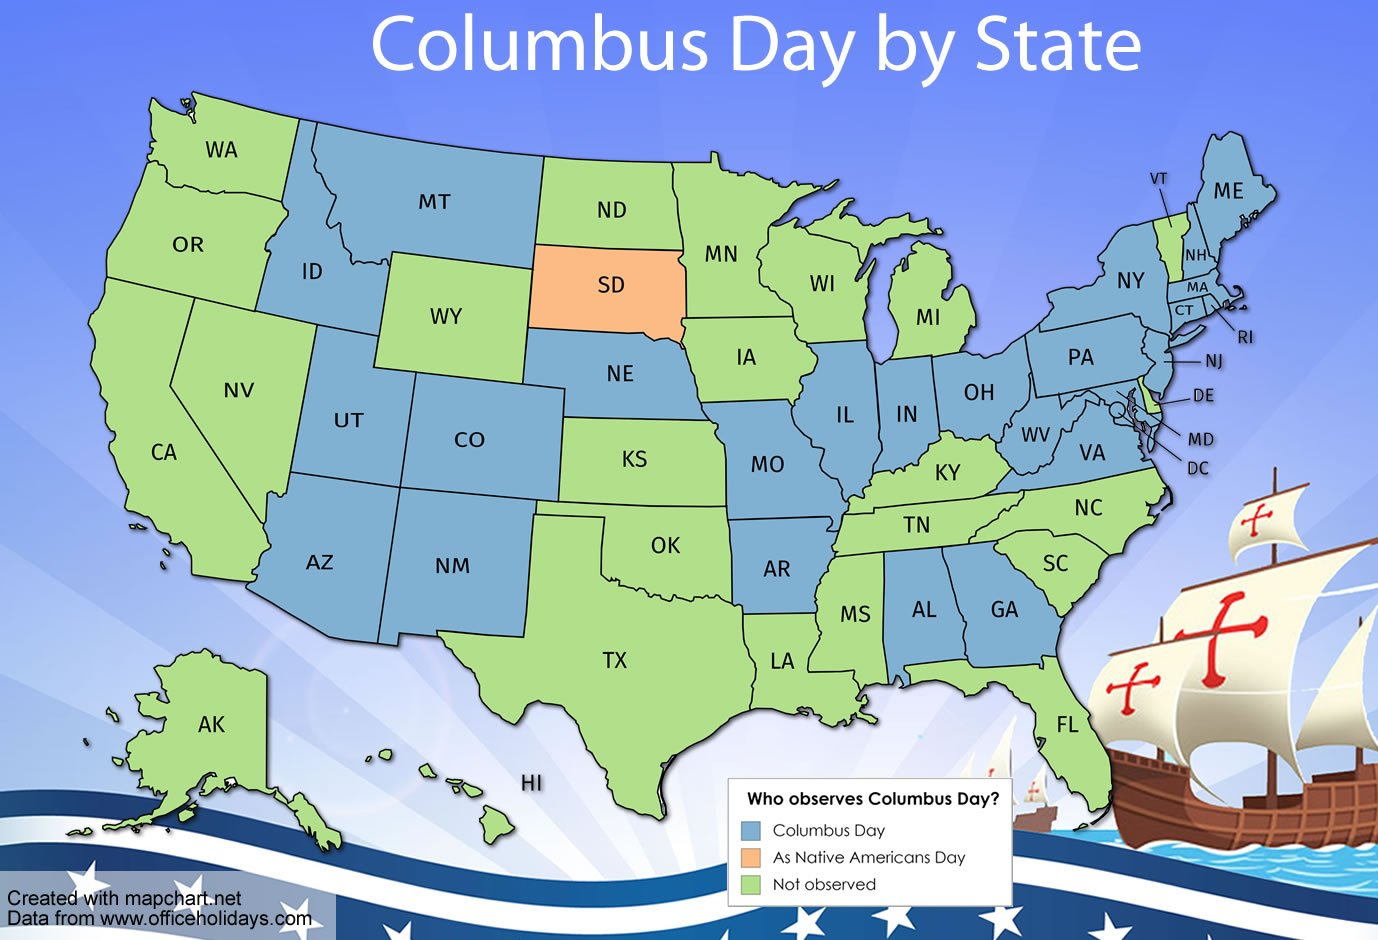 Map showing Columbus Day observance by State